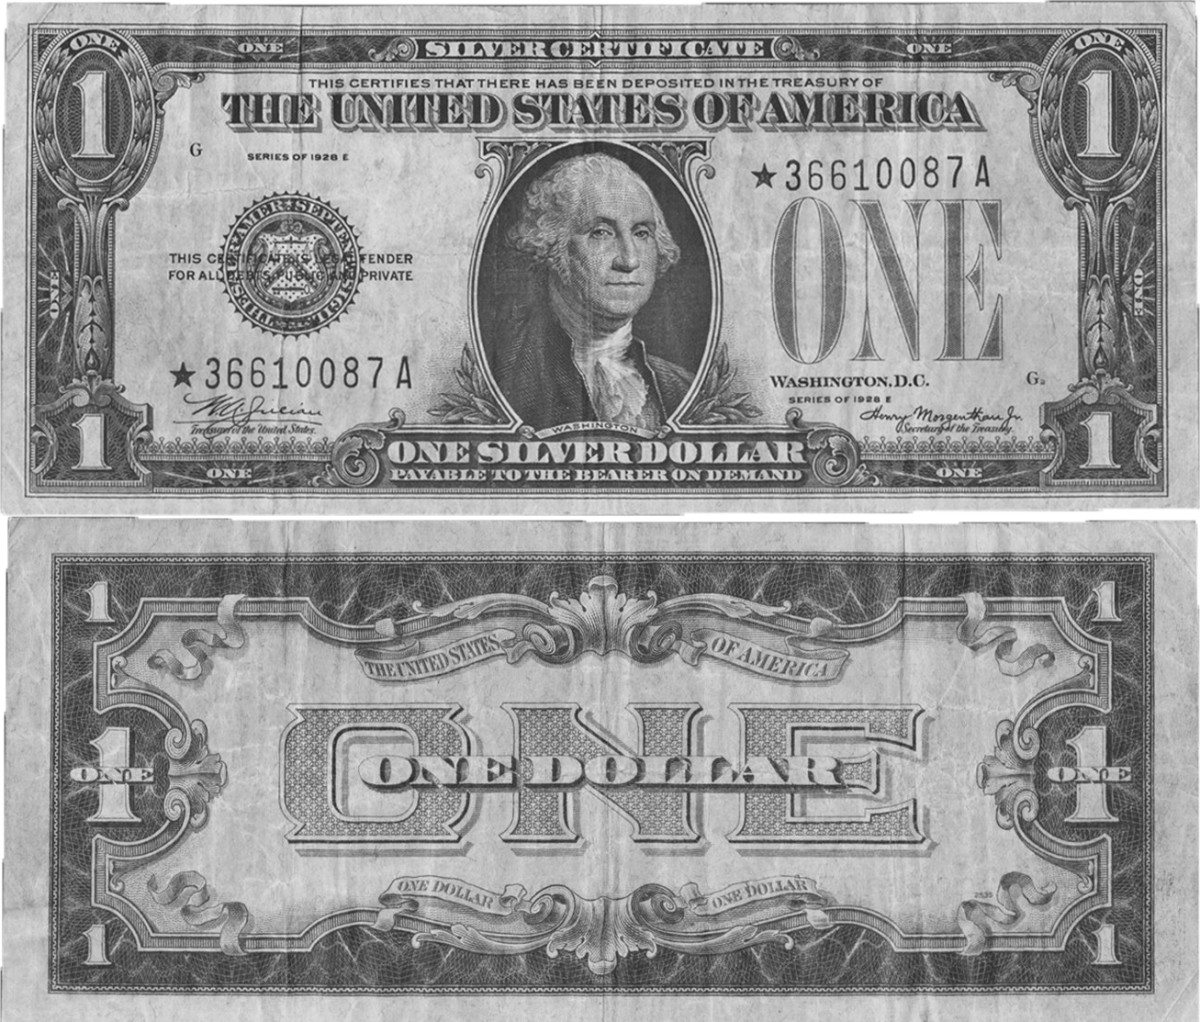 1928E star $1 silver certificate (Image courtesy of Heritage Auctions).